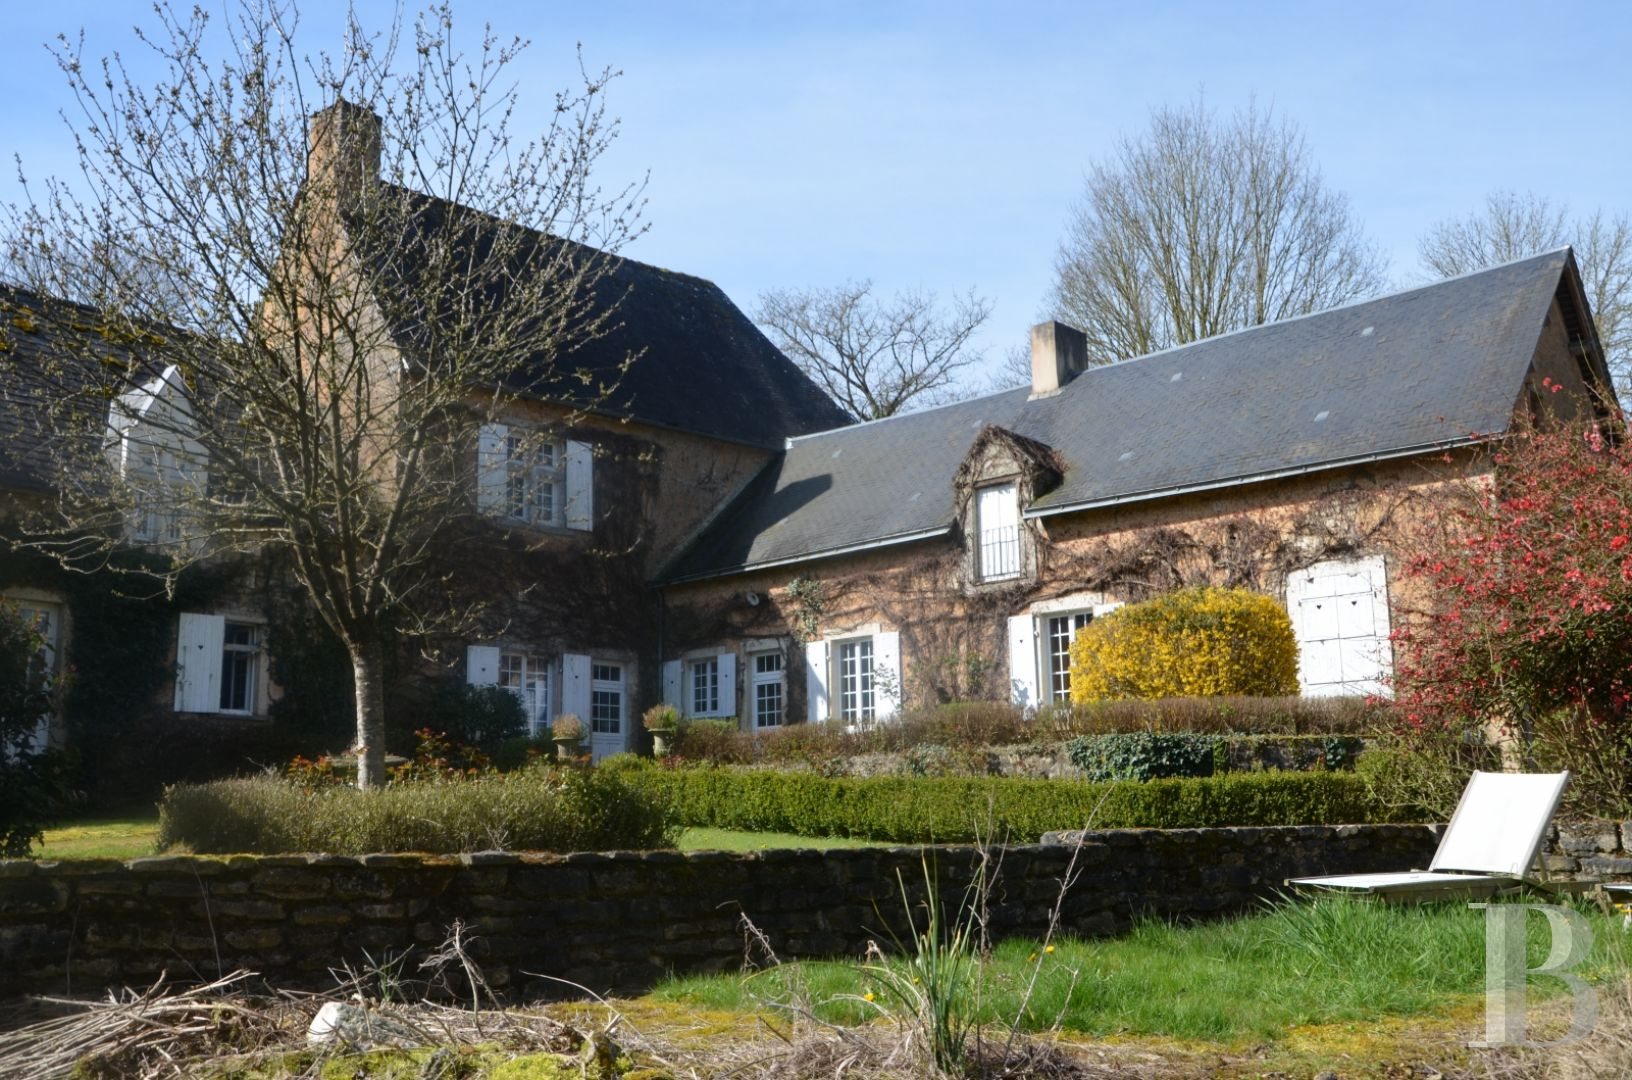 France mansions for sale pays de loire manors equestrian - 1 zoom